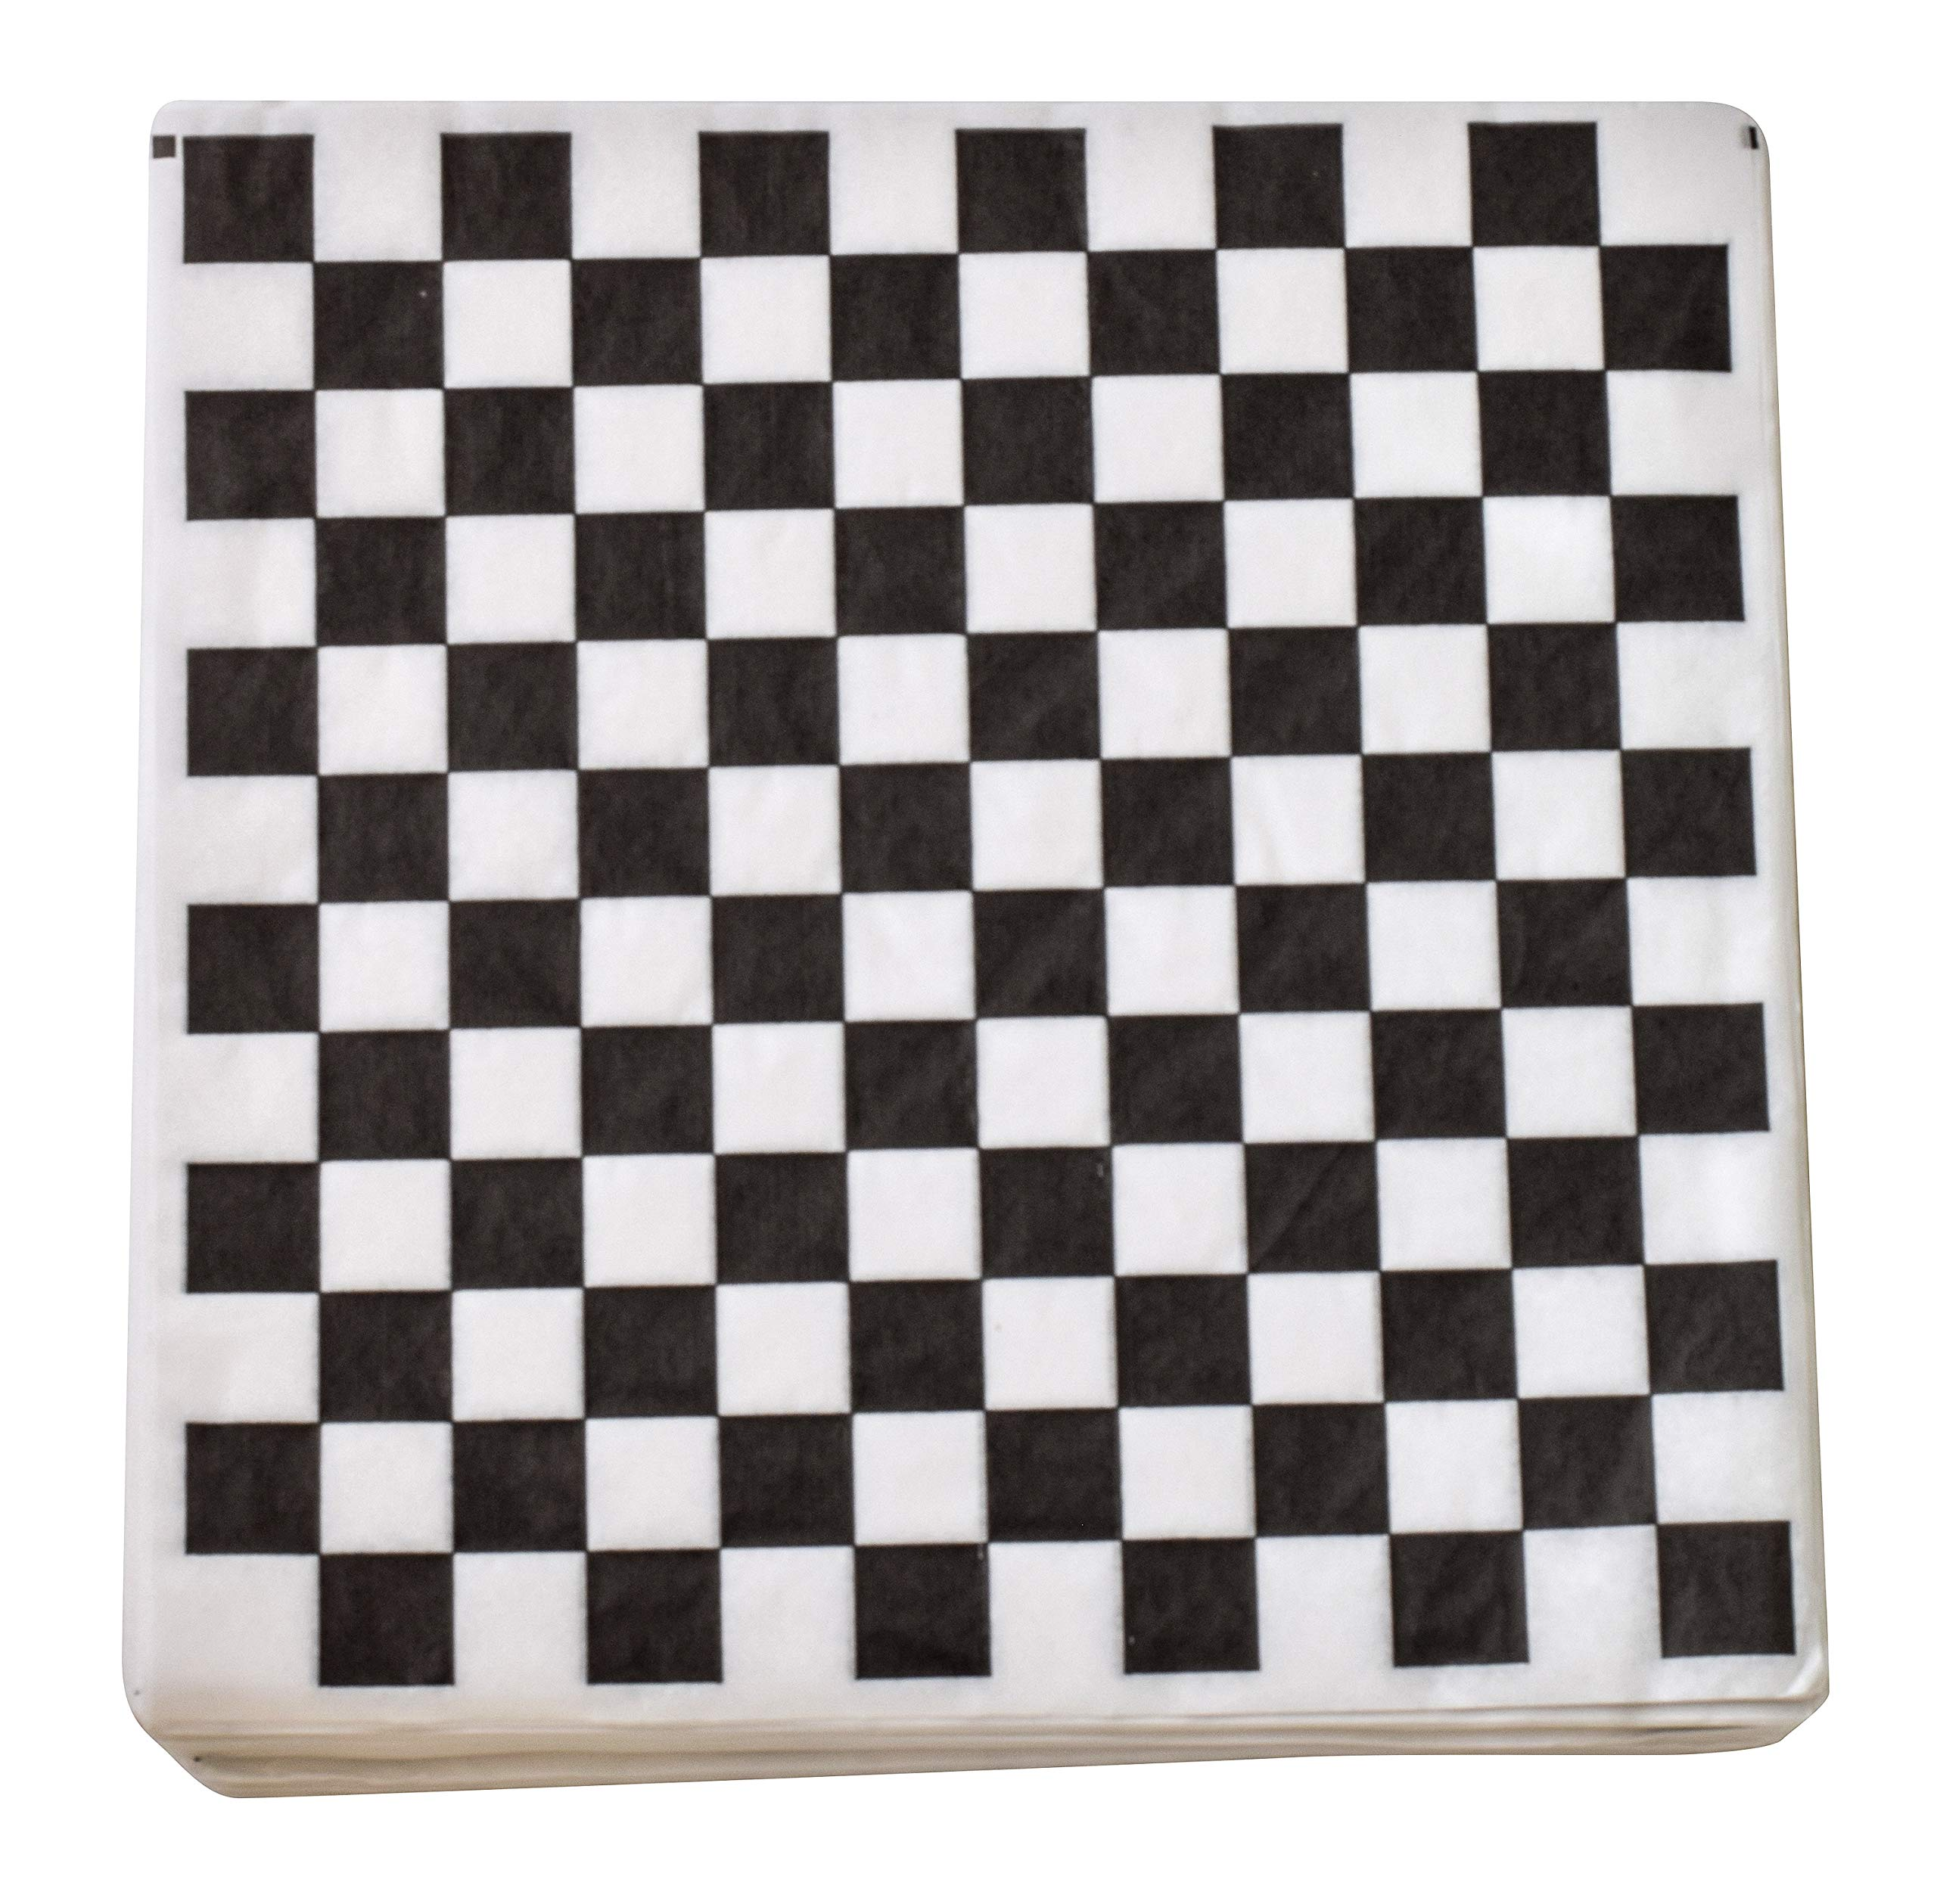 1000 Sheets Burger/Sandwich Wrapping Paper - 12 Inch Food Basket Liners - Black and White Checkered Design by JA Kitchens